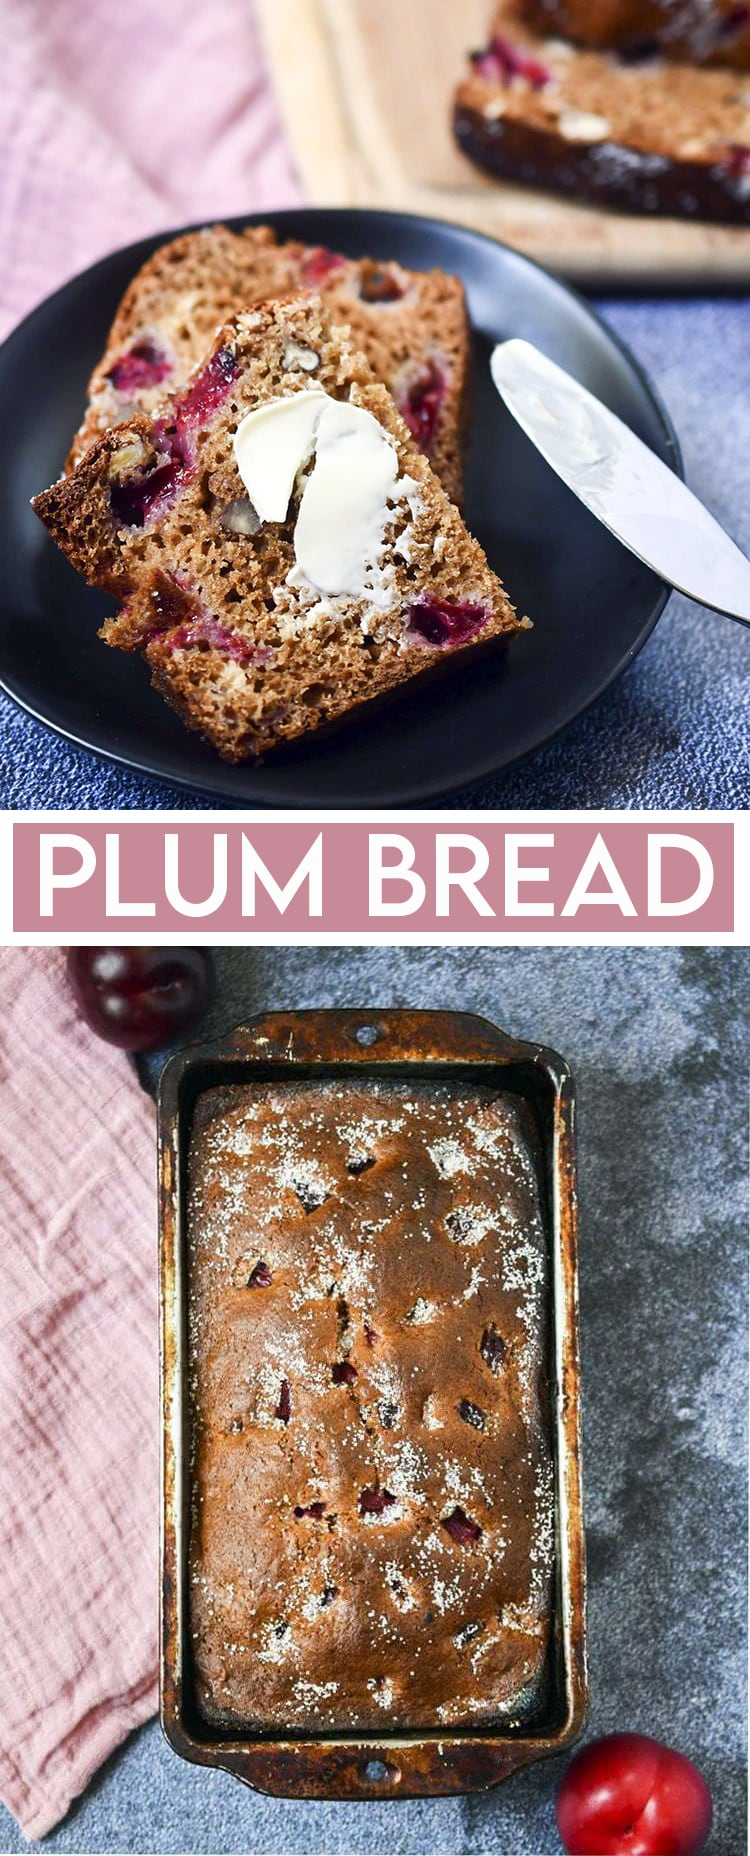 A collage of two photos of plum bread with text inbetween for pinterest. The first is a slice of bread with butter on it. The second is a loaf of plum bread.